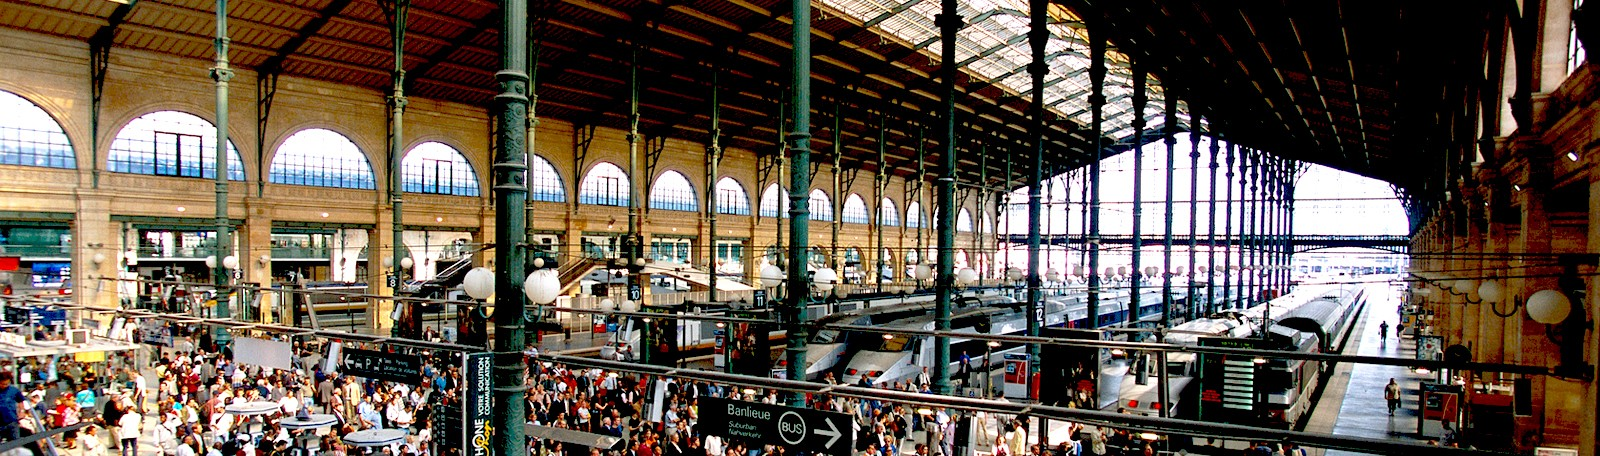 Arrêt de bus Tourny - Stations, public transport - Bordeaux